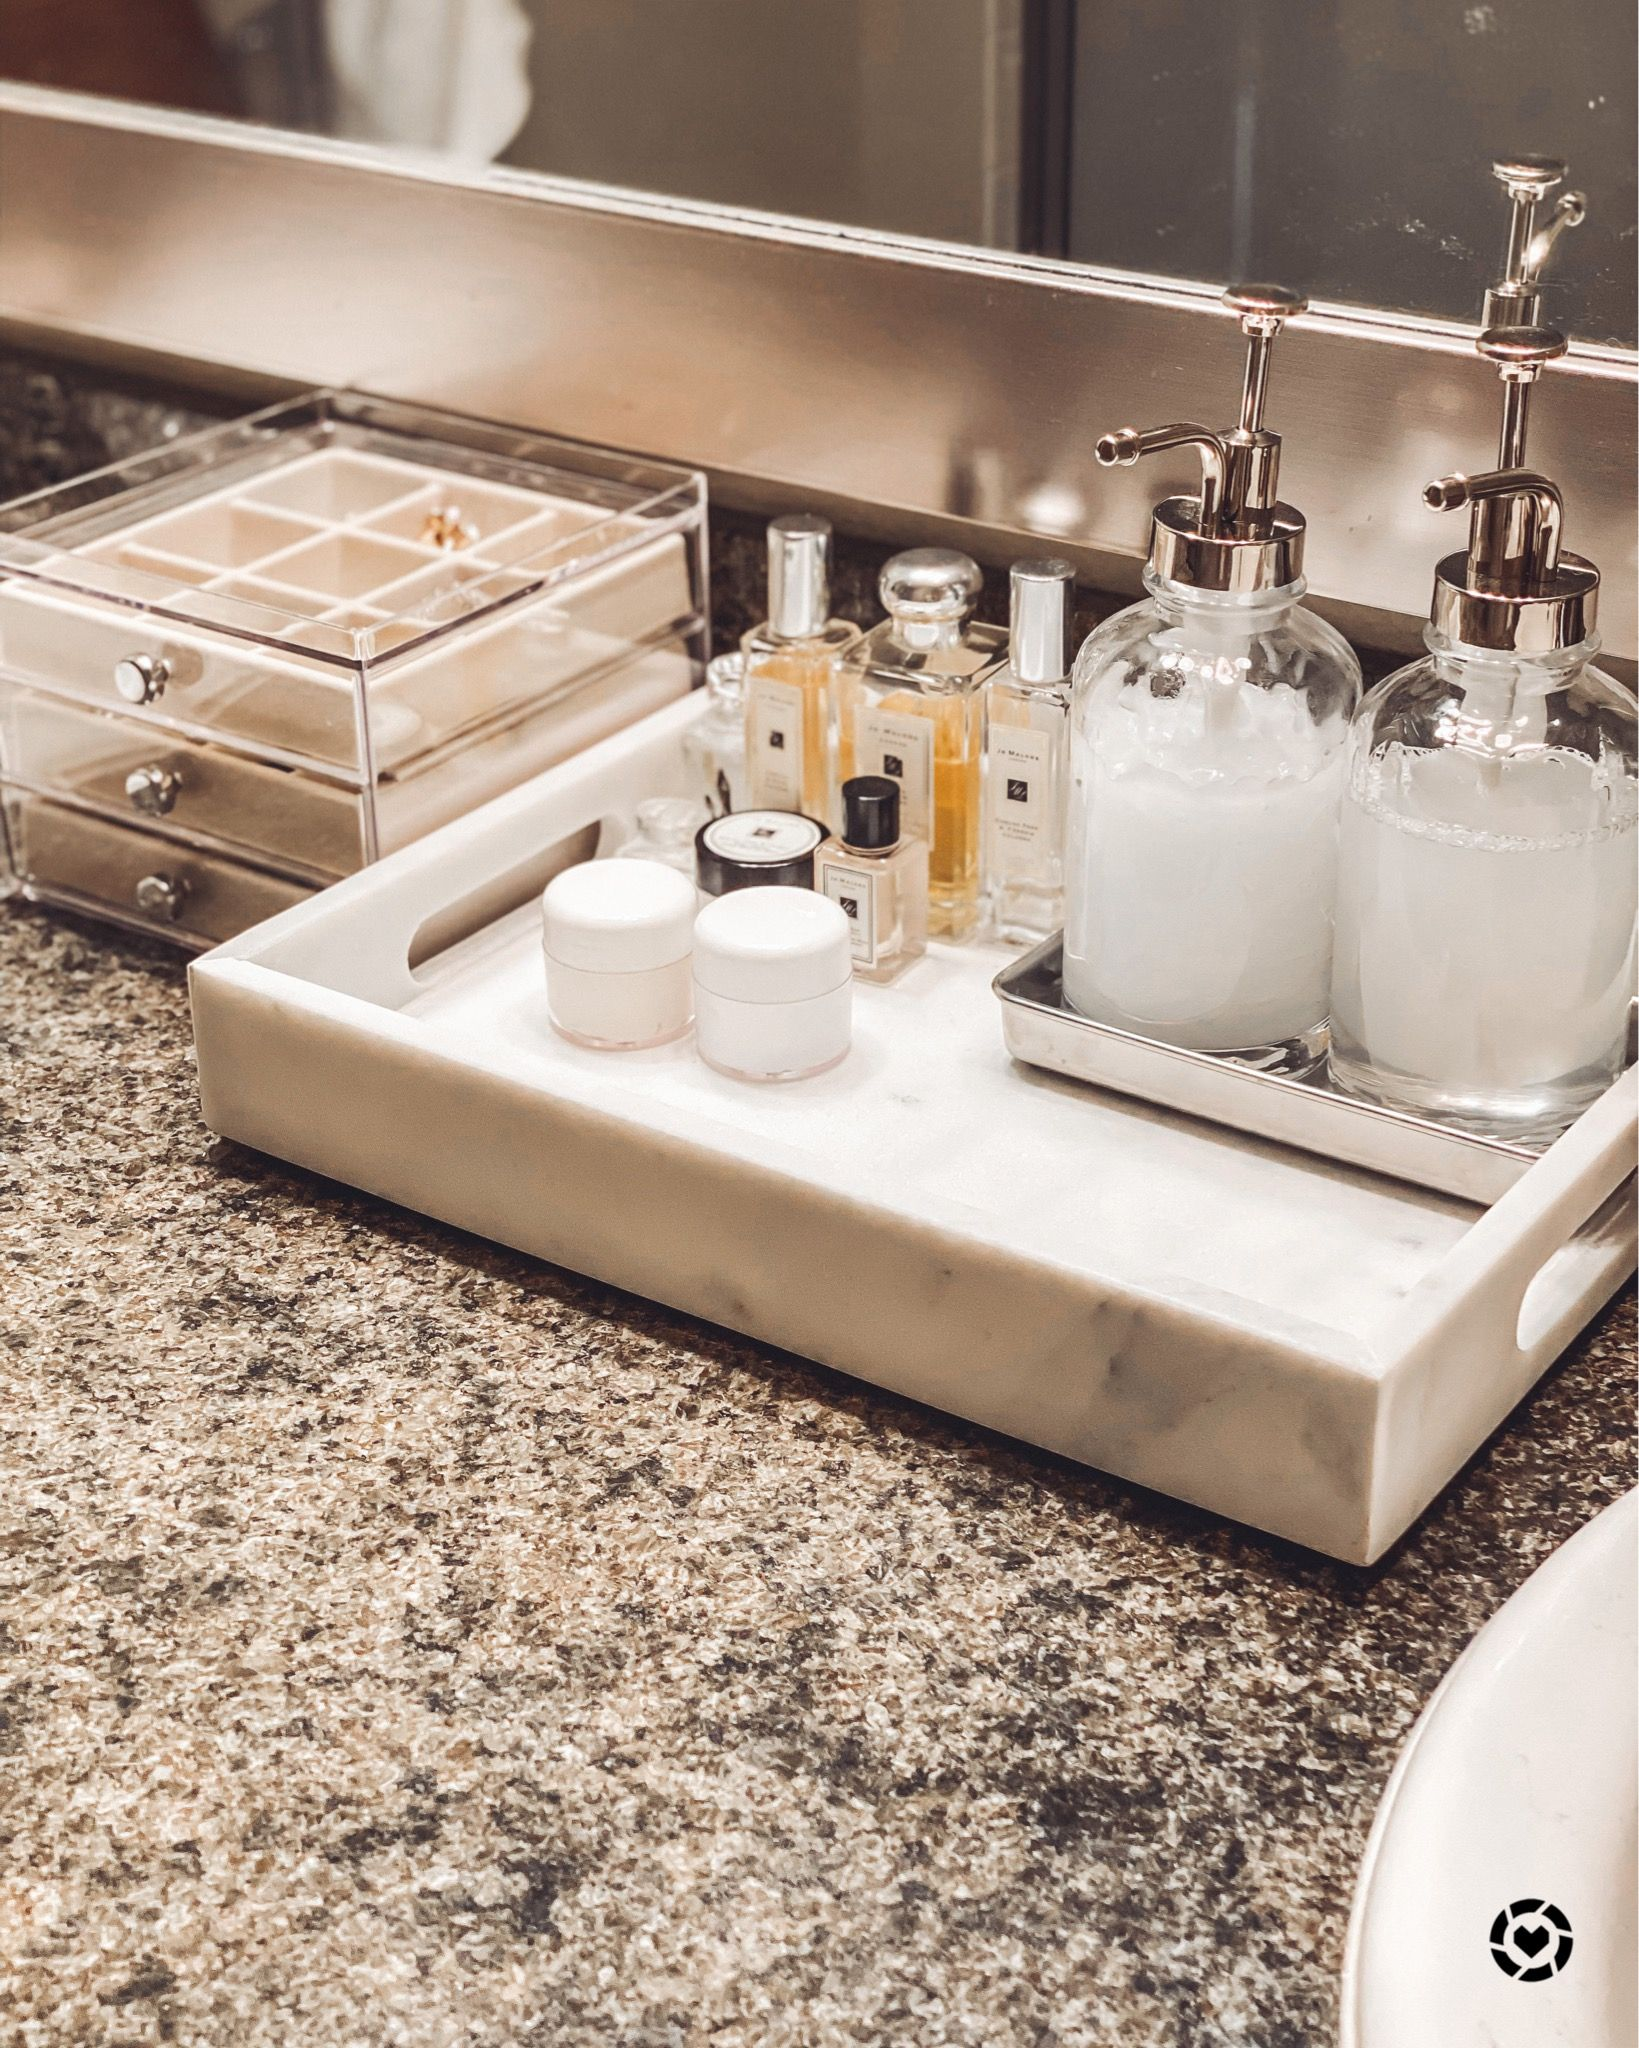 Target Items For Bathroom Countertop Organization Marble Tray